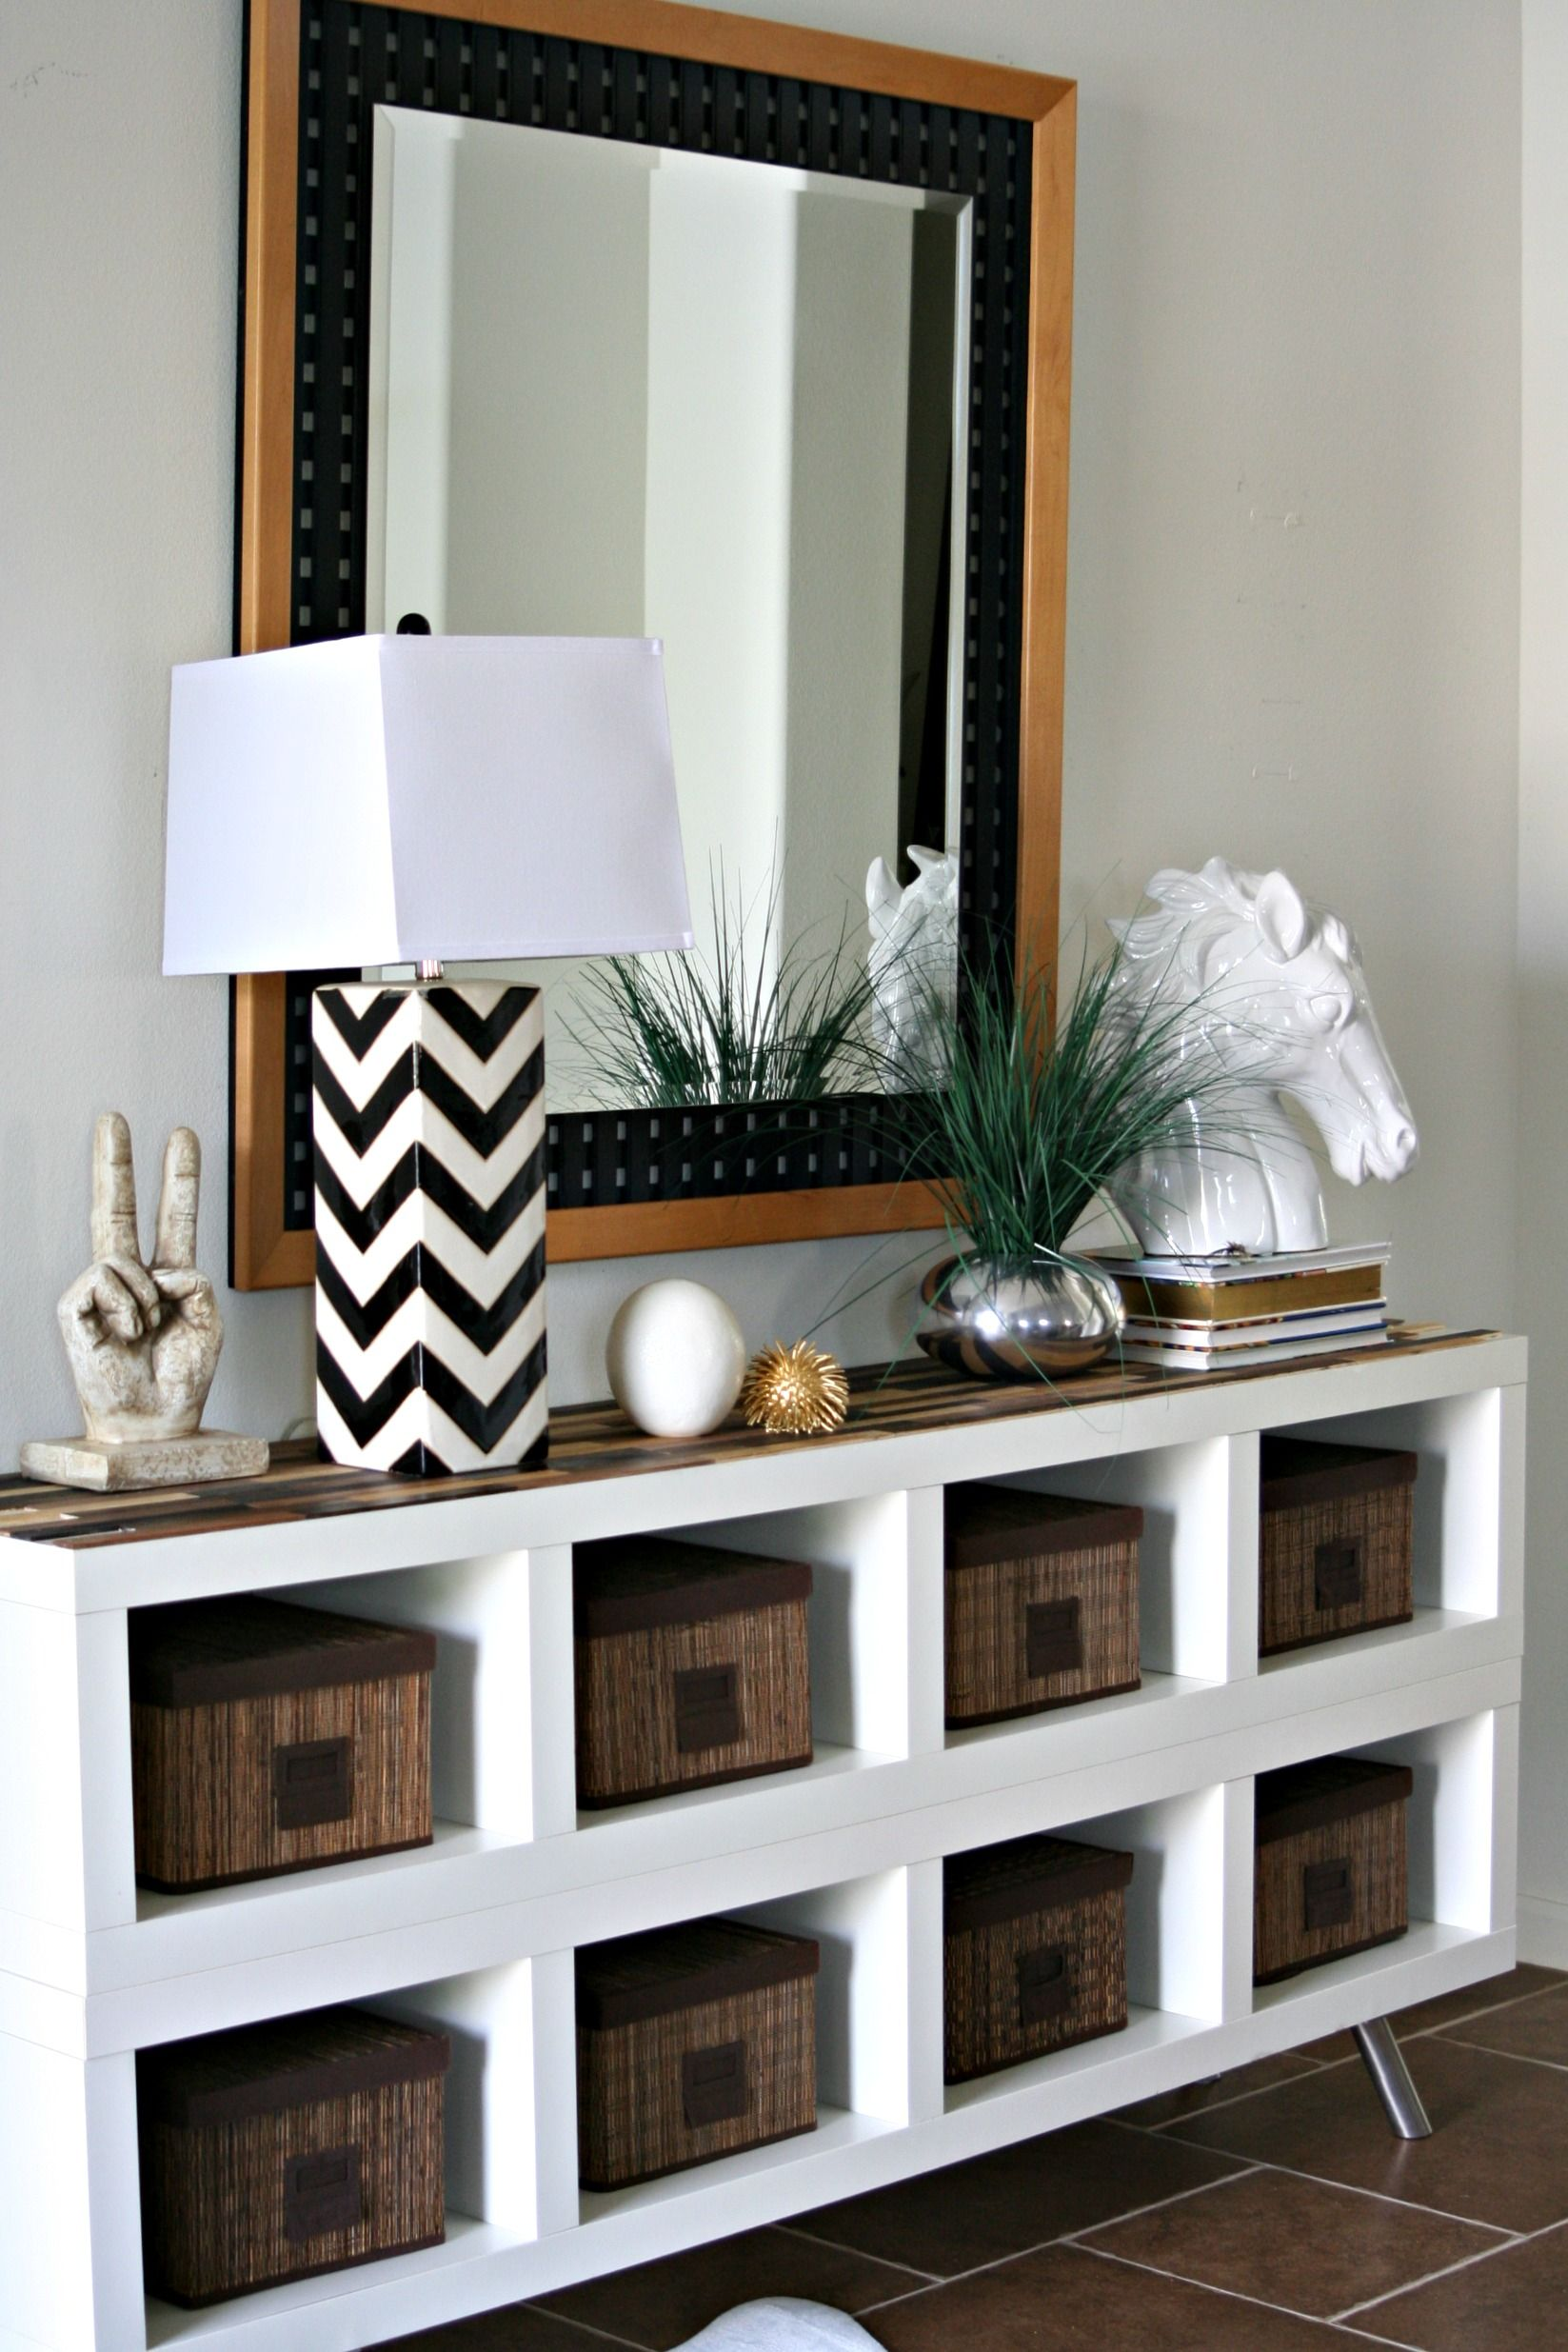 17 Best images about Ikea hack on Pinterest   Reclaimed wood wall art, Ikea  expedit and Ikea